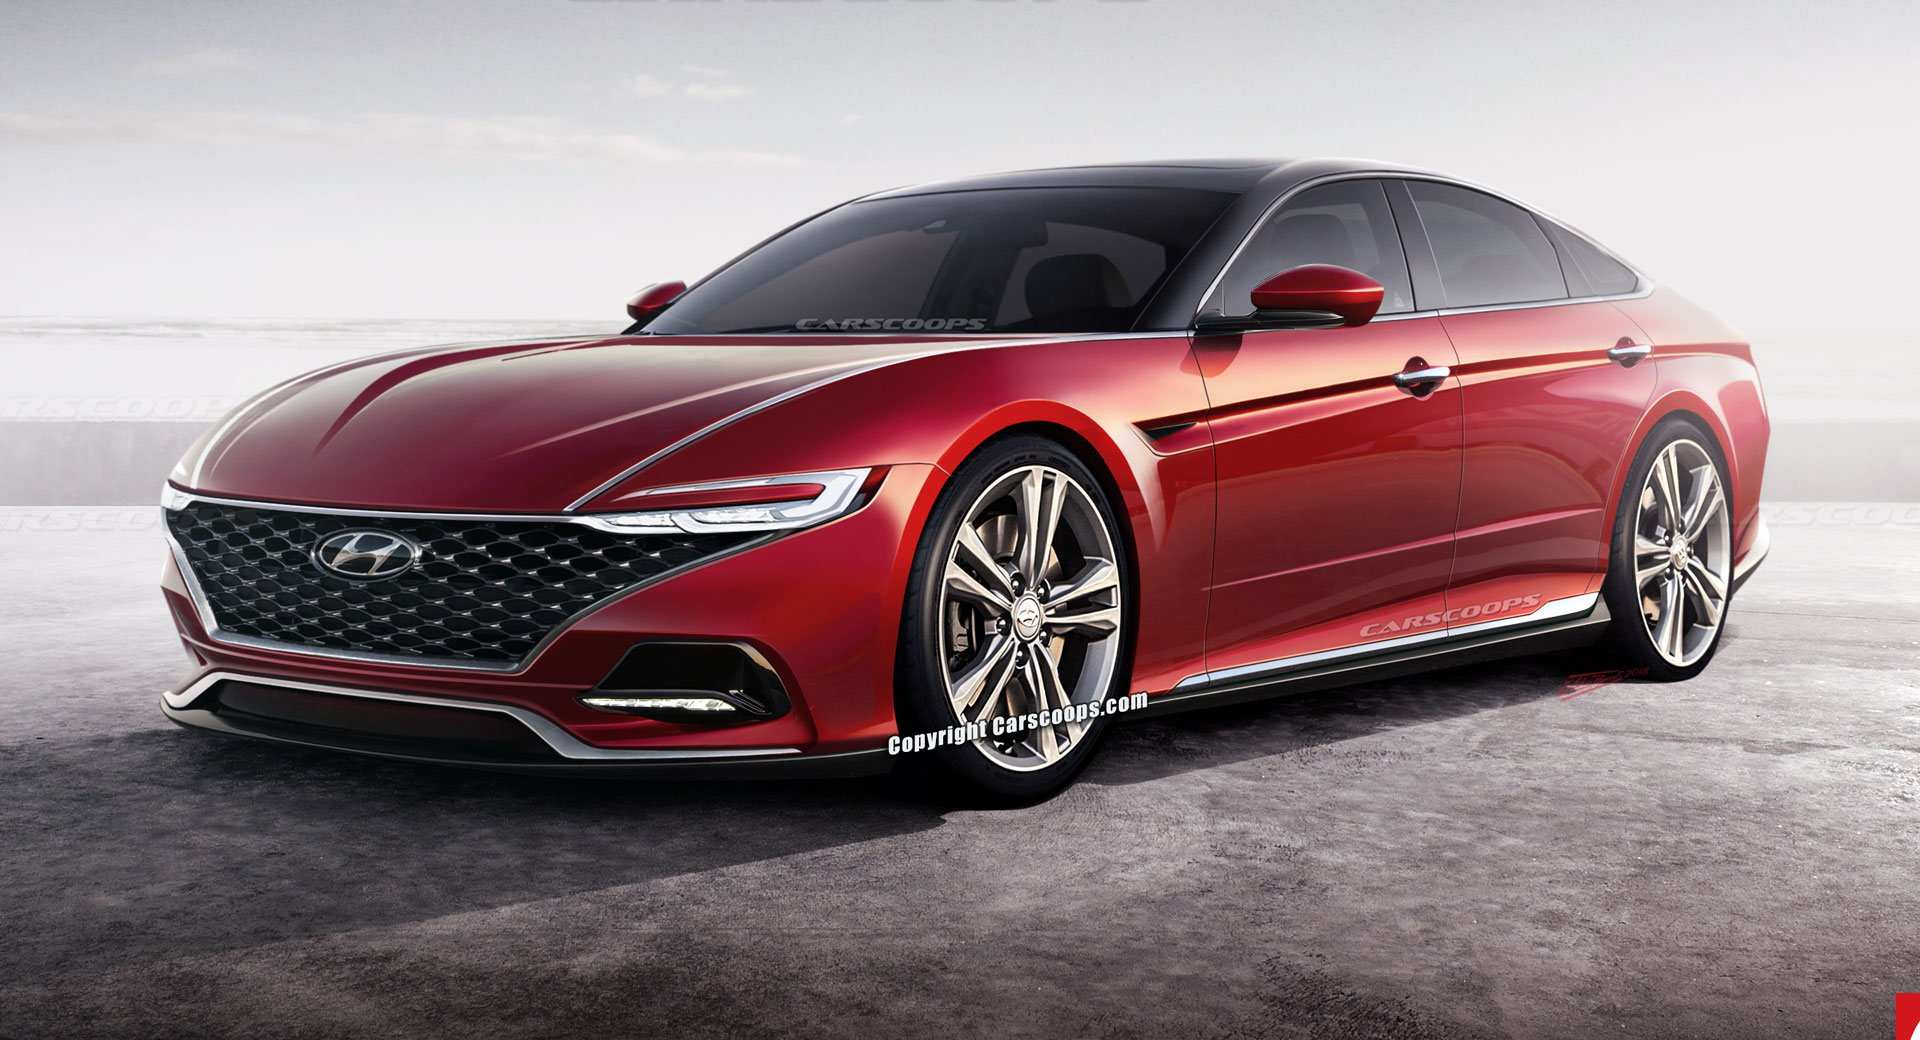 49 Concept of 2020 Hyundai Sonata Hybrid Specs and Review by 2020 Hyundai Sonata Hybrid